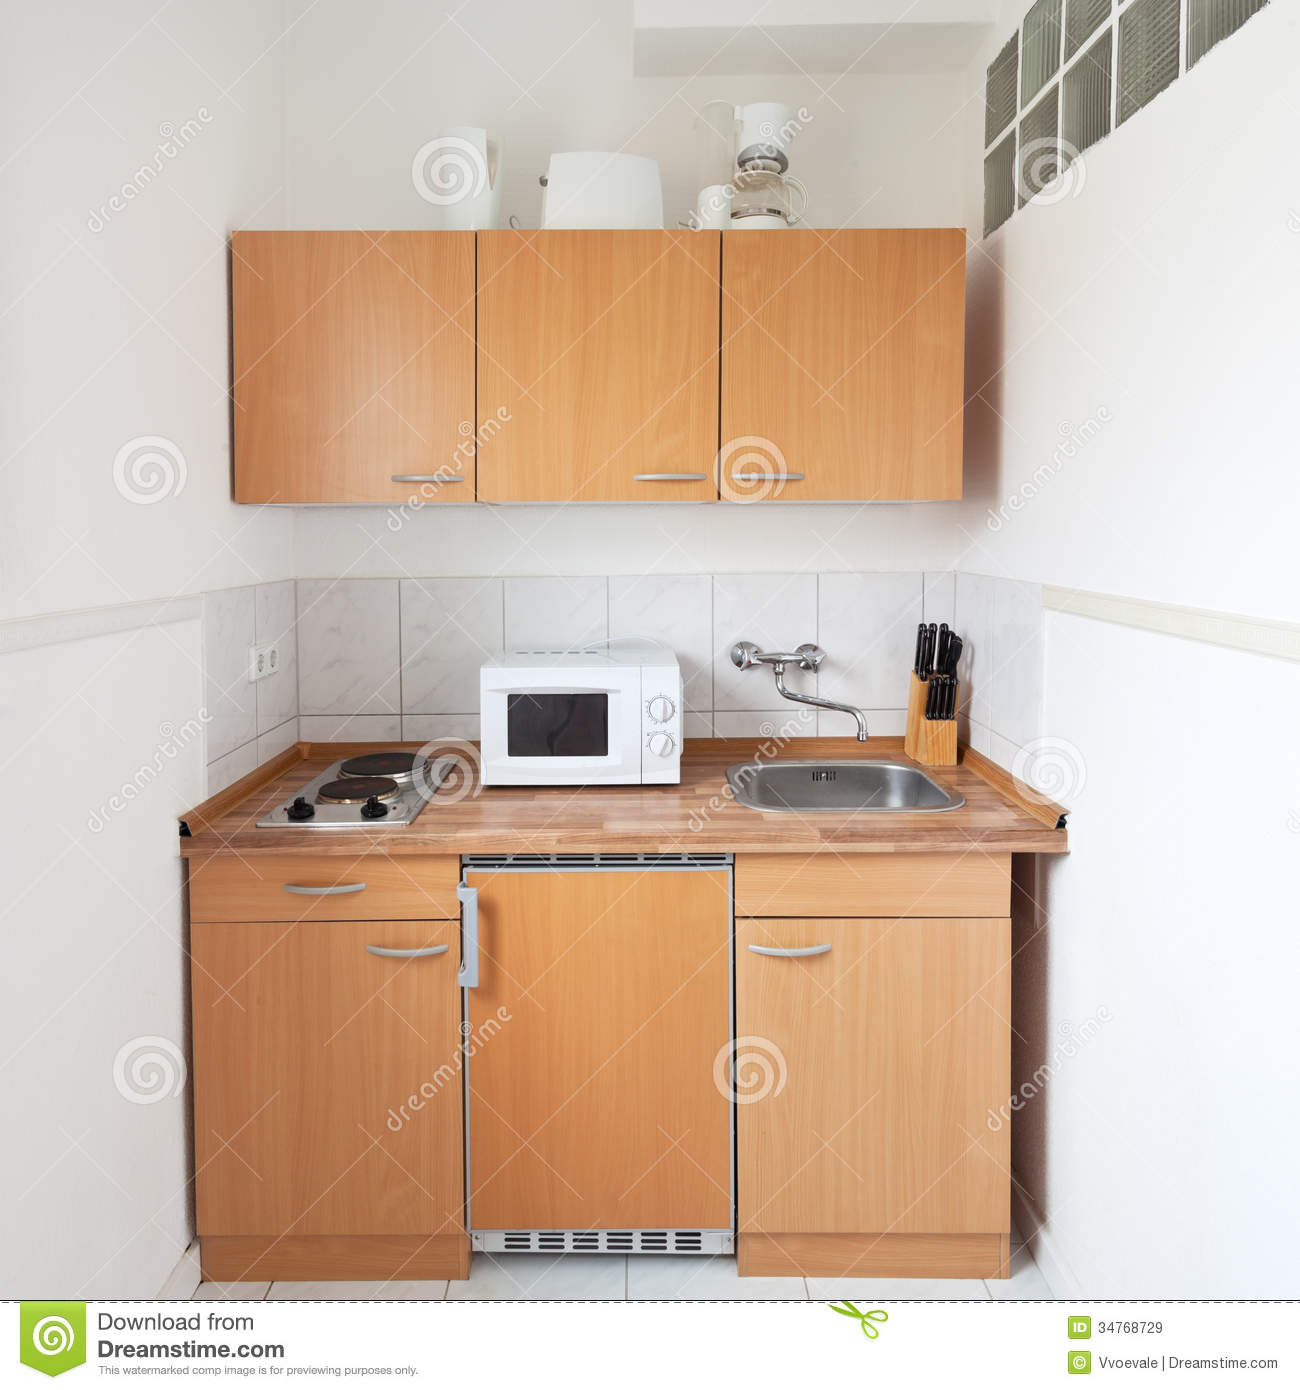 Simple Kitchen With Furniture Set Stock Image Image Of